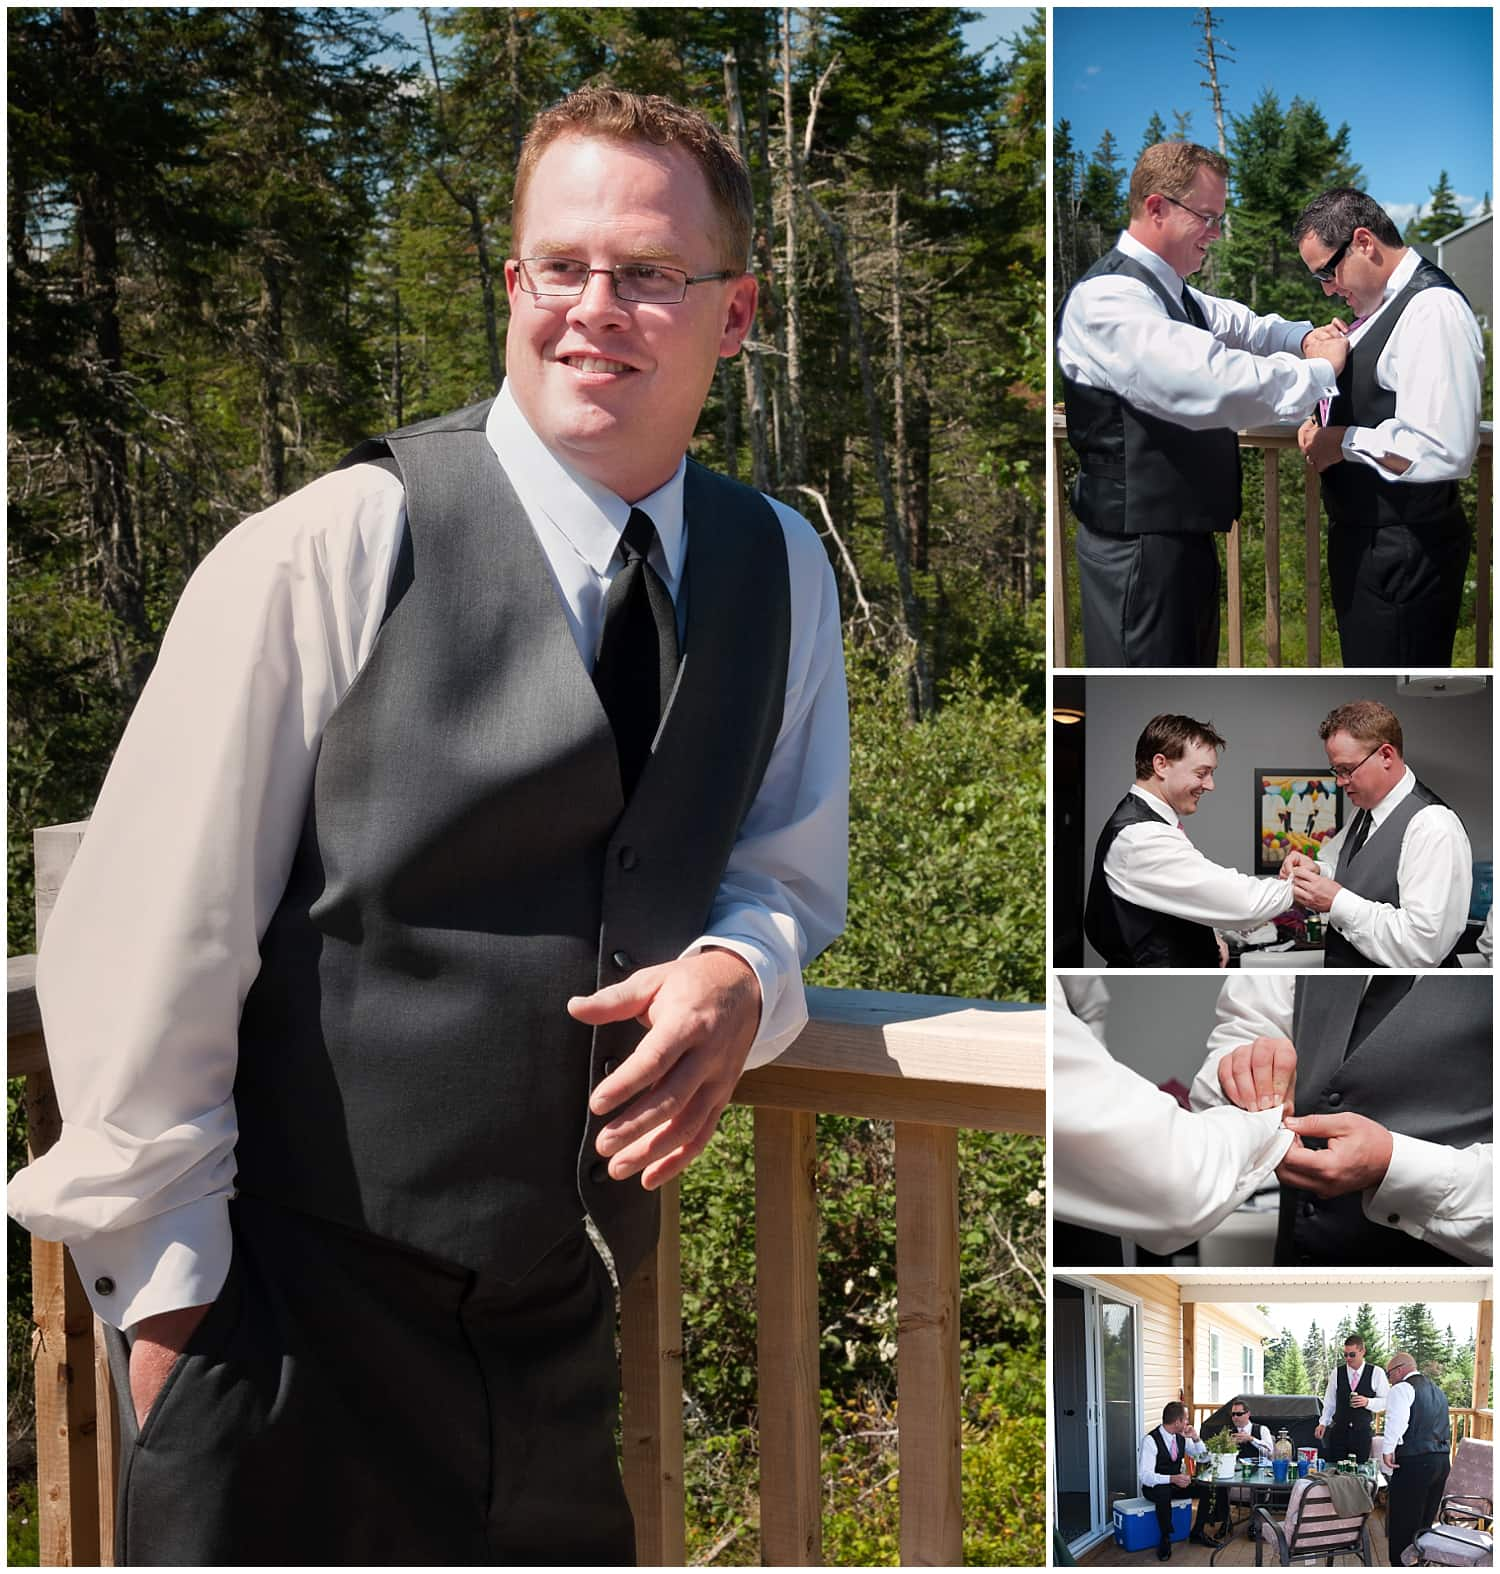 The groom getting ready for his wedding with his groomsmen in Mount Uniacke NS.